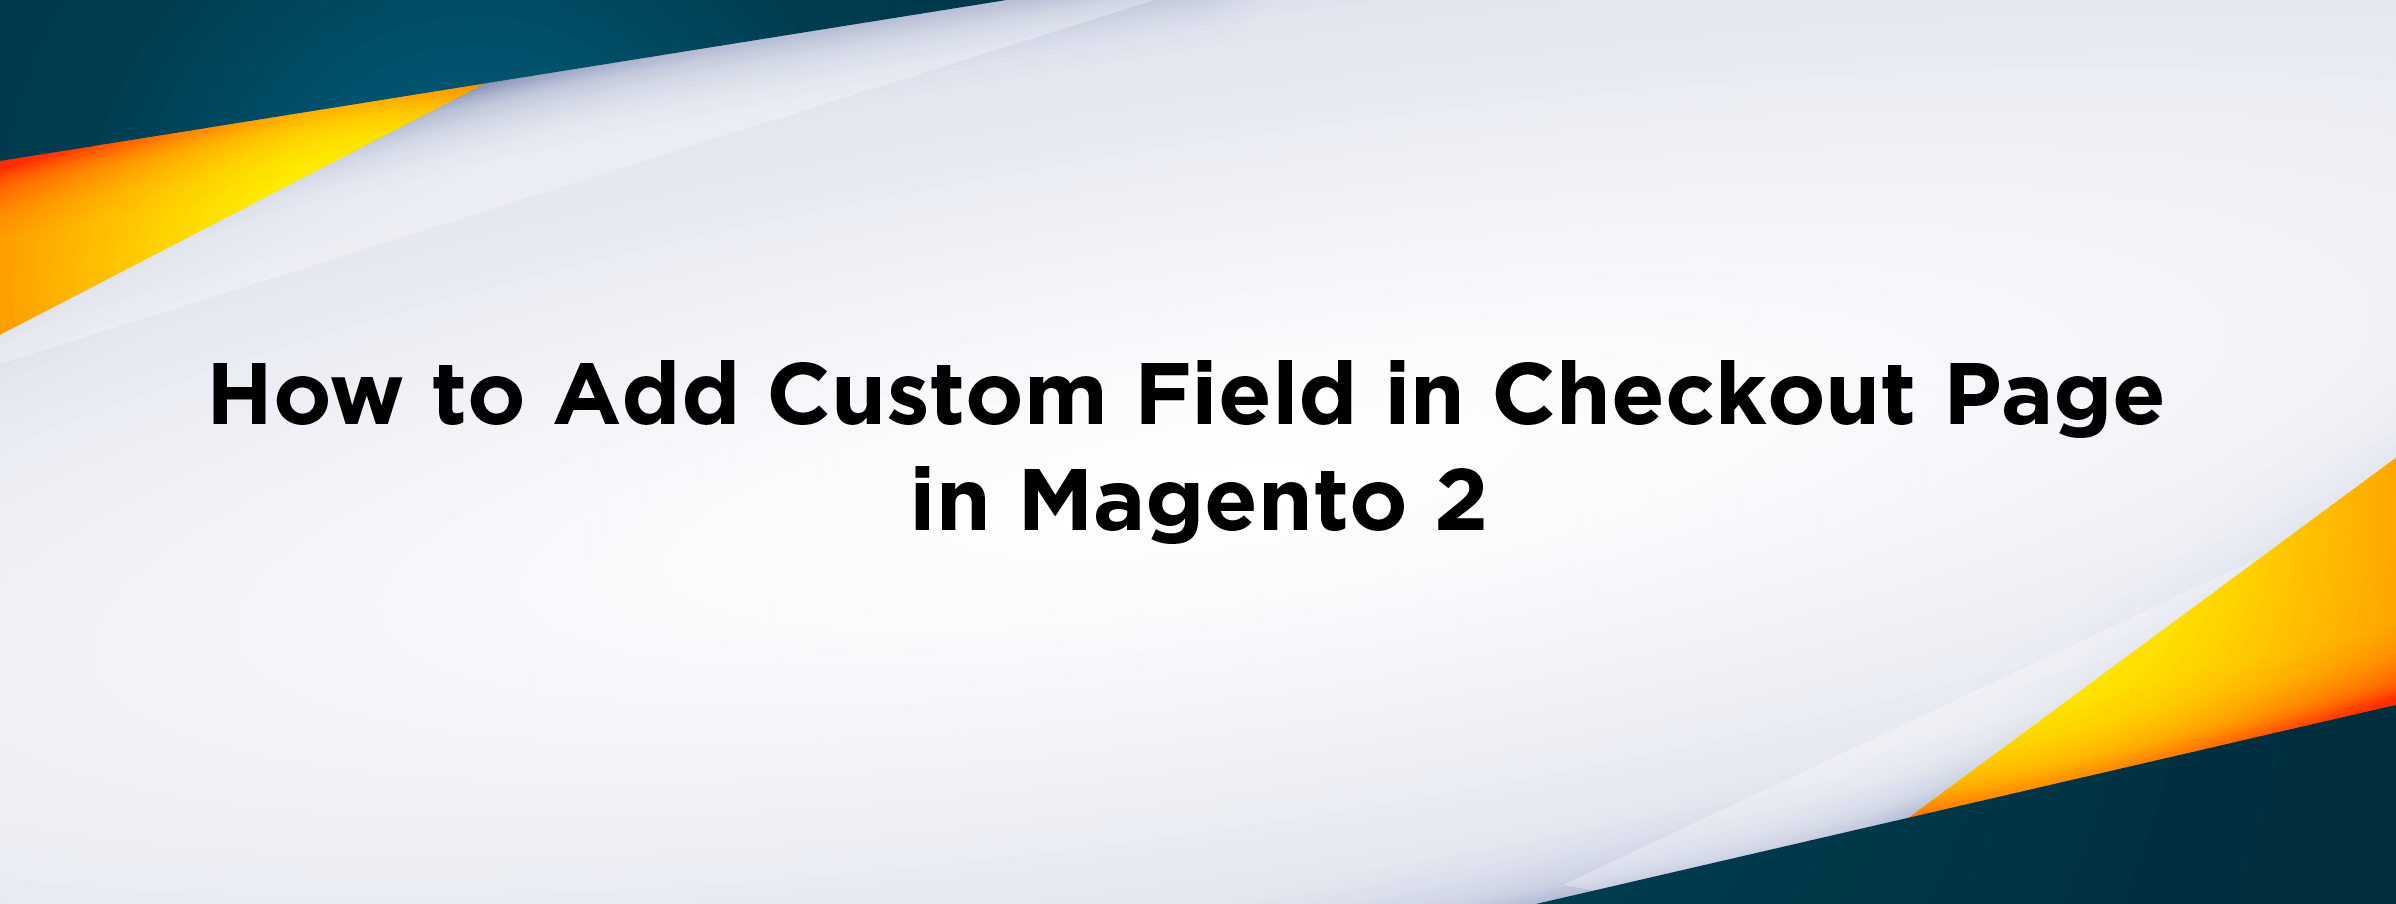 How to Add Custom Field to Checkout Page in Magento 2